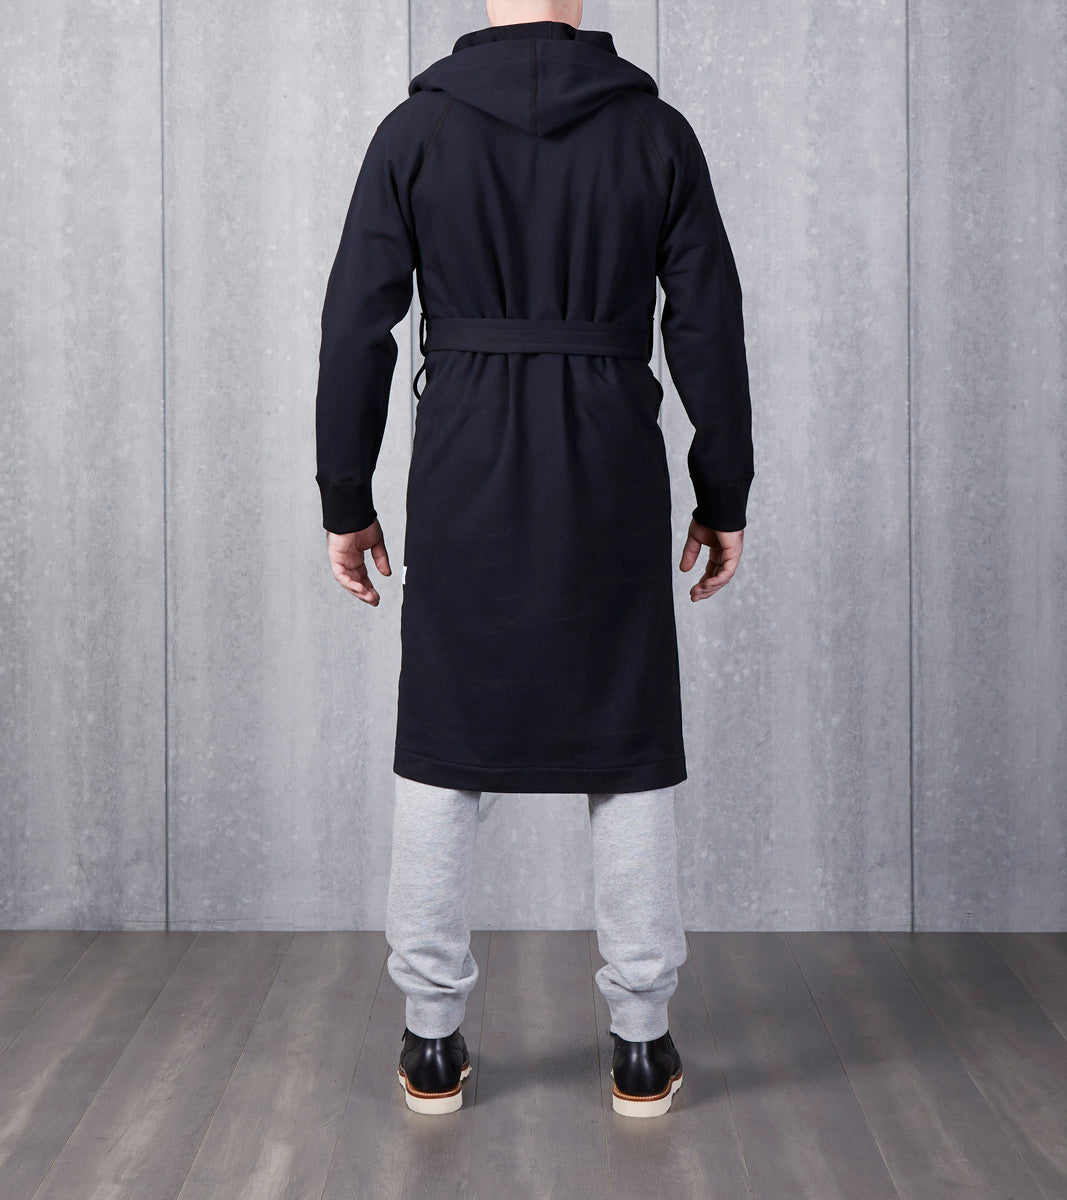 d366b22772 ... Reigning Champ Hooded Robe - Black Division Road